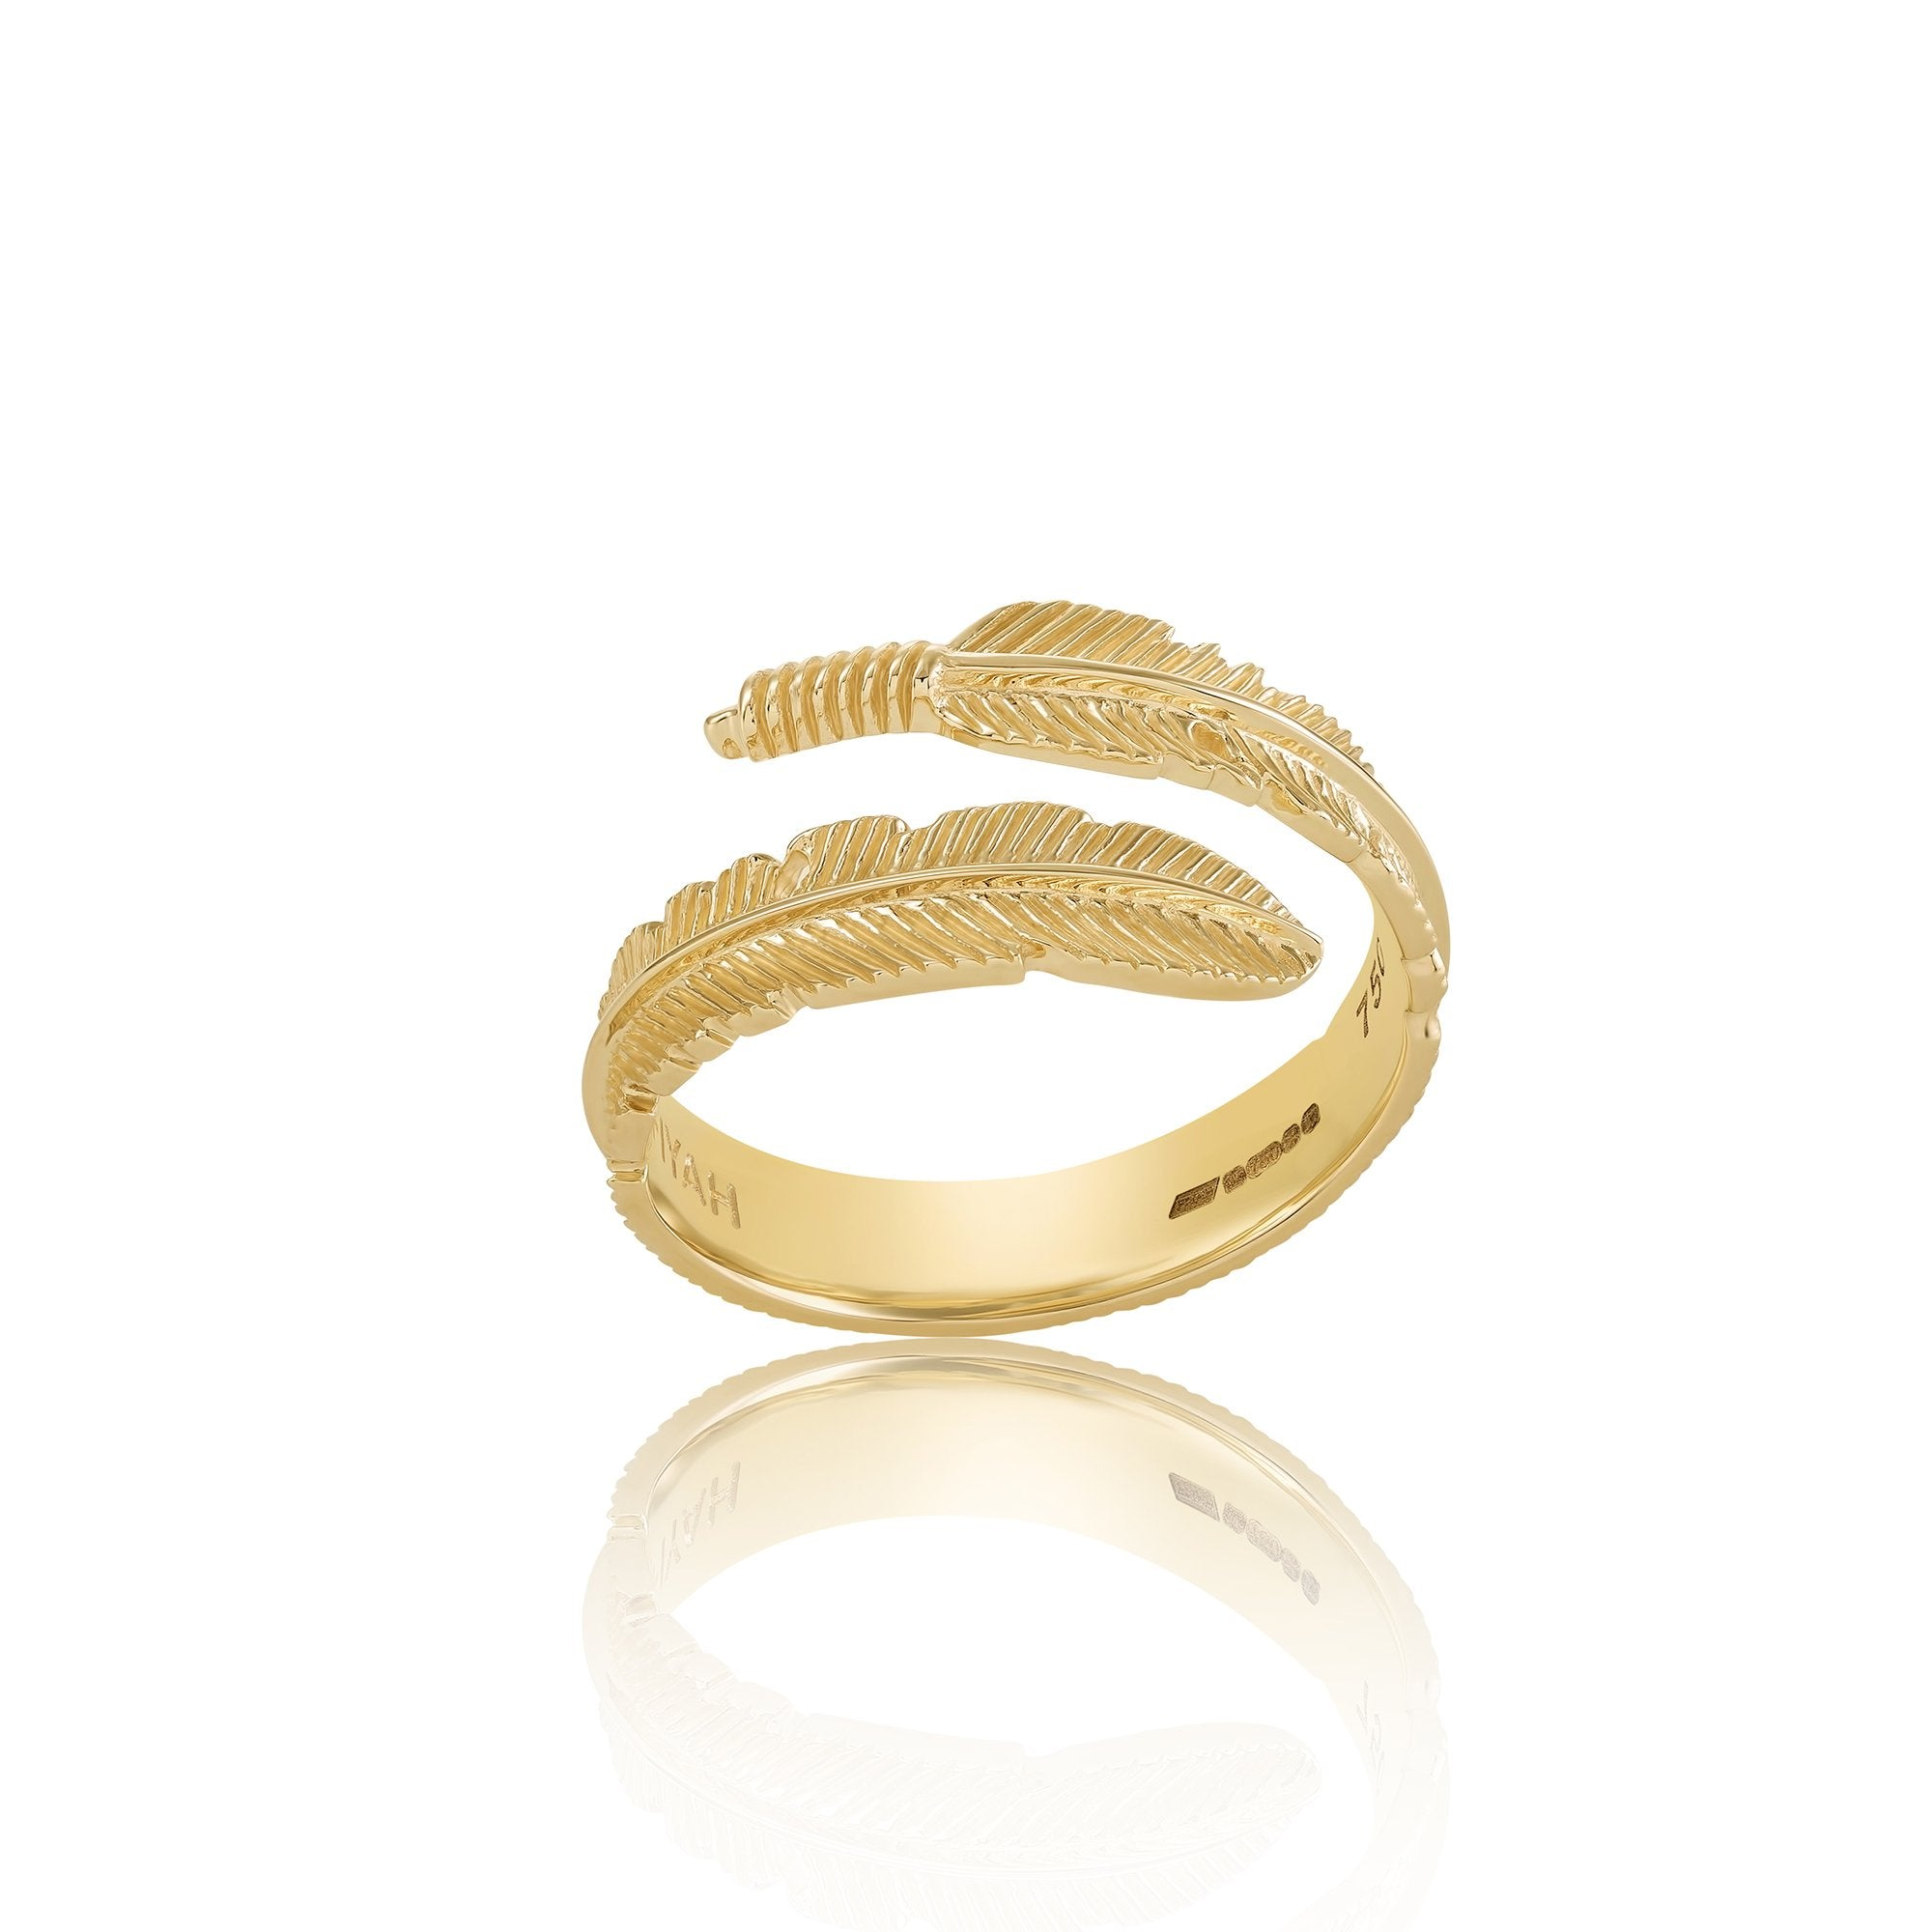 18ct Gold Adjustable Plume Ring - FIYAH.fr